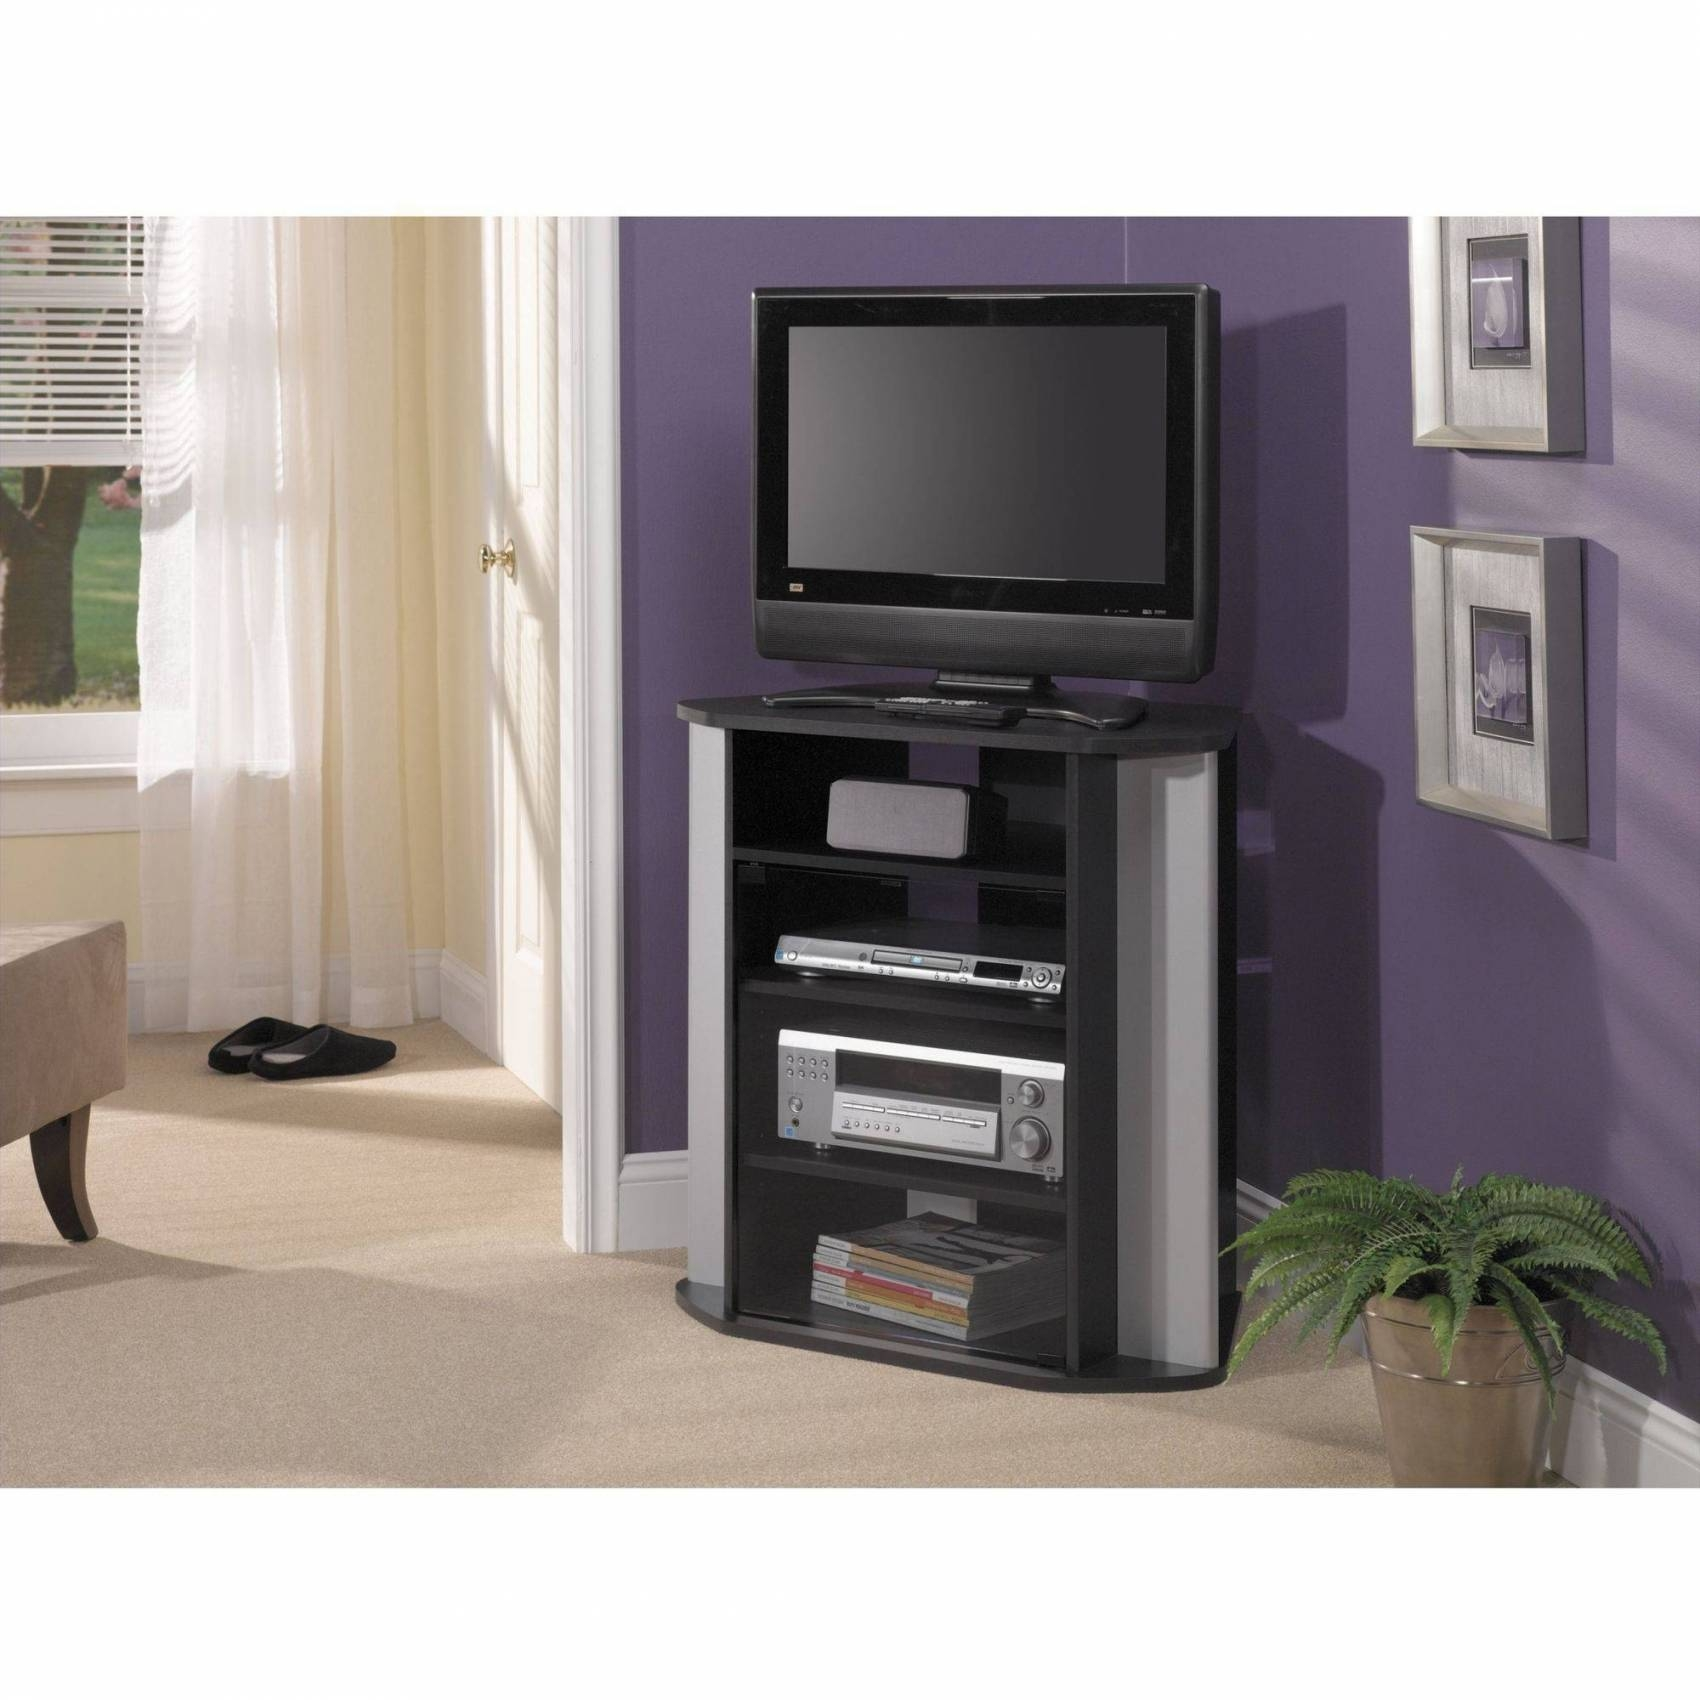 Best Of Cheap Tv Stands With Mount Fresh | Vgmnation with regard to Cheap Corner Tv Stands for Flat Screen (Image 3 of 15)